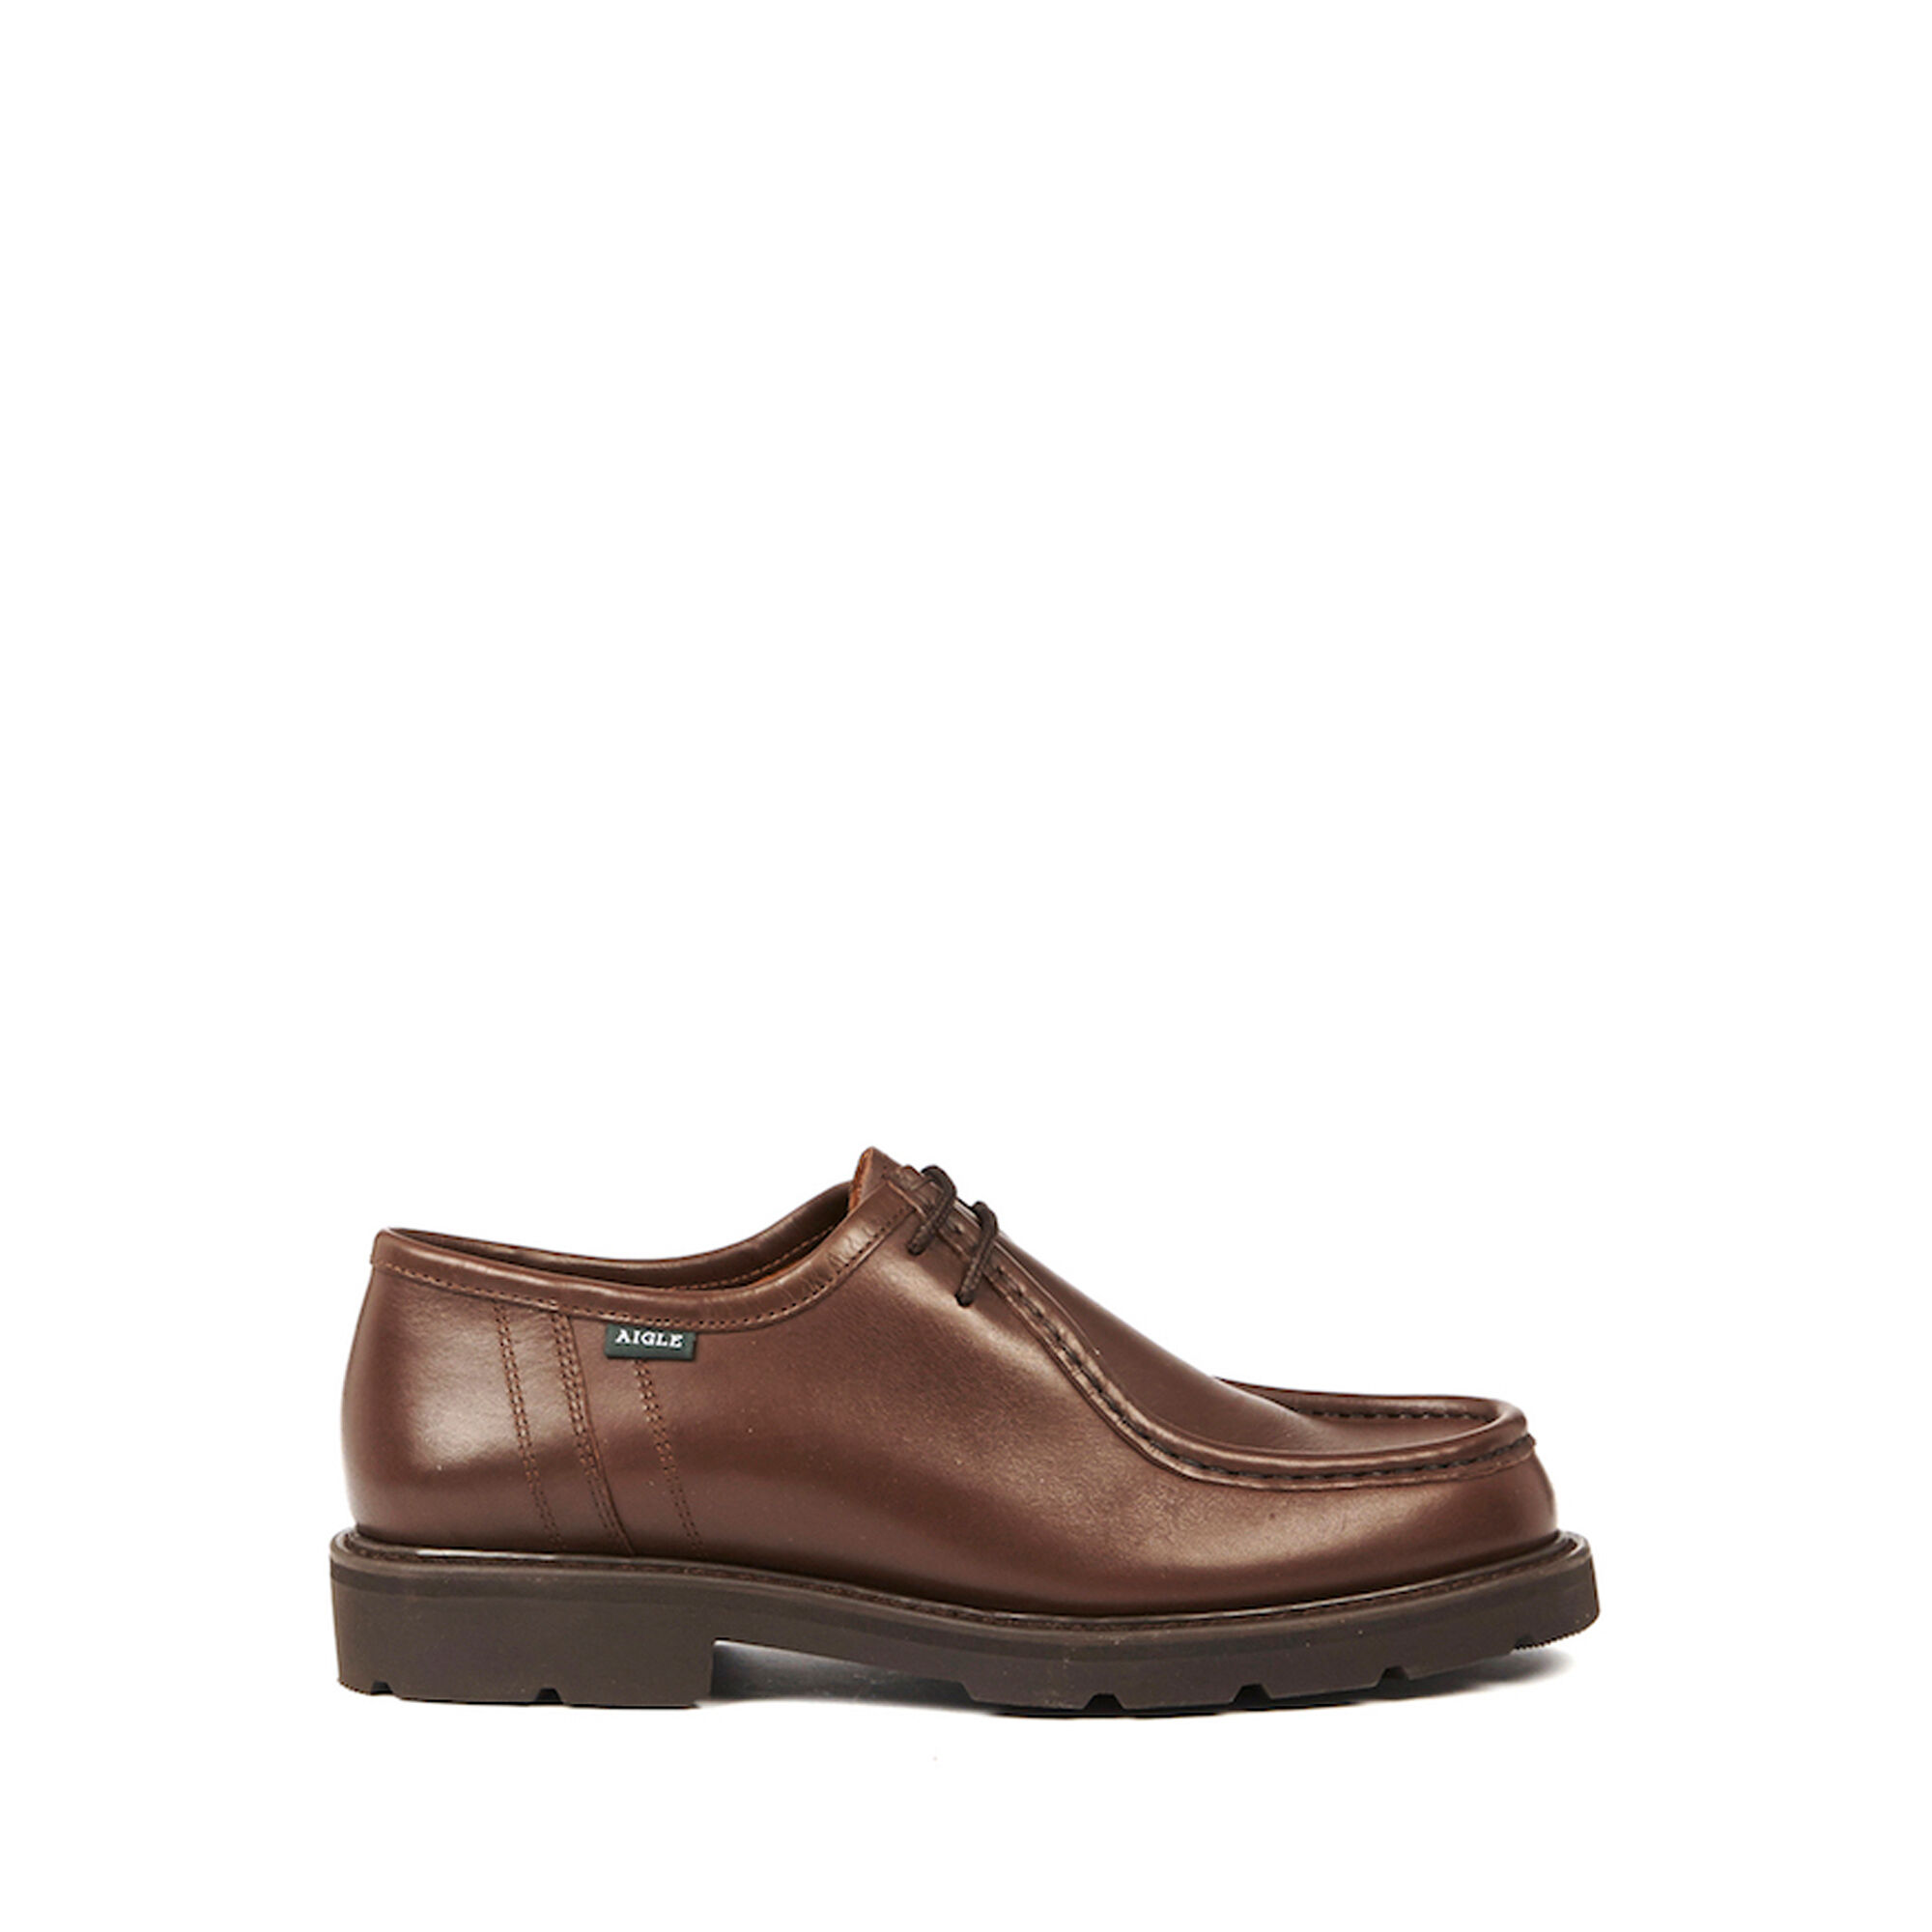 Aigle Chaussures Homme Homme Cuir Homme Homme Cuir Chaussures Aigle Homme Chaussures qvC40t